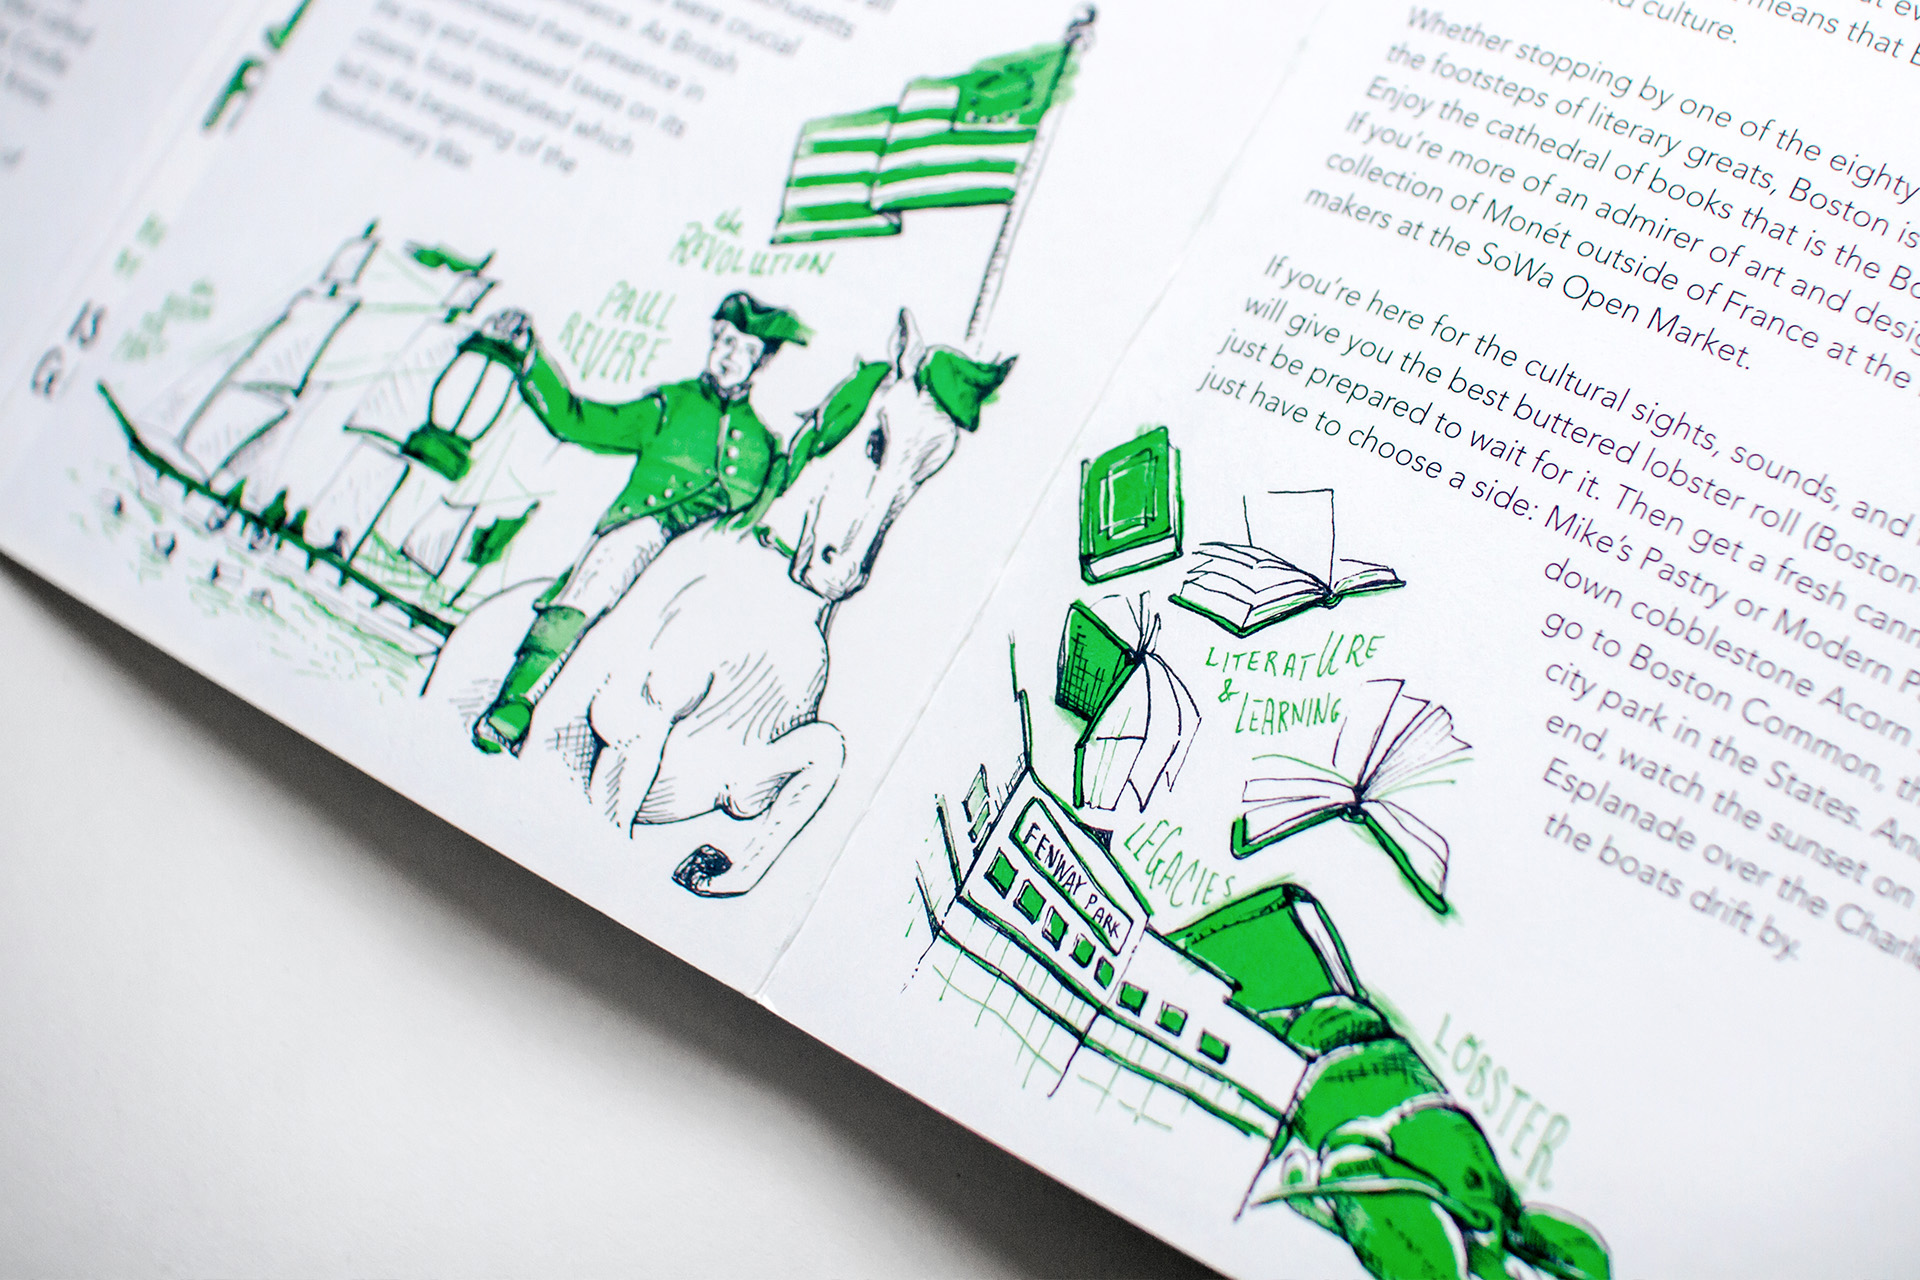 Detail of illustrations of Paul Revere on his horse, the Revolutionary War flag and the Boston Tea Party ship dumping tea crates into Boston Harbor, next to books and Fenway Park and a Lobster, for the Neenah Paper Presents Boston city guide.